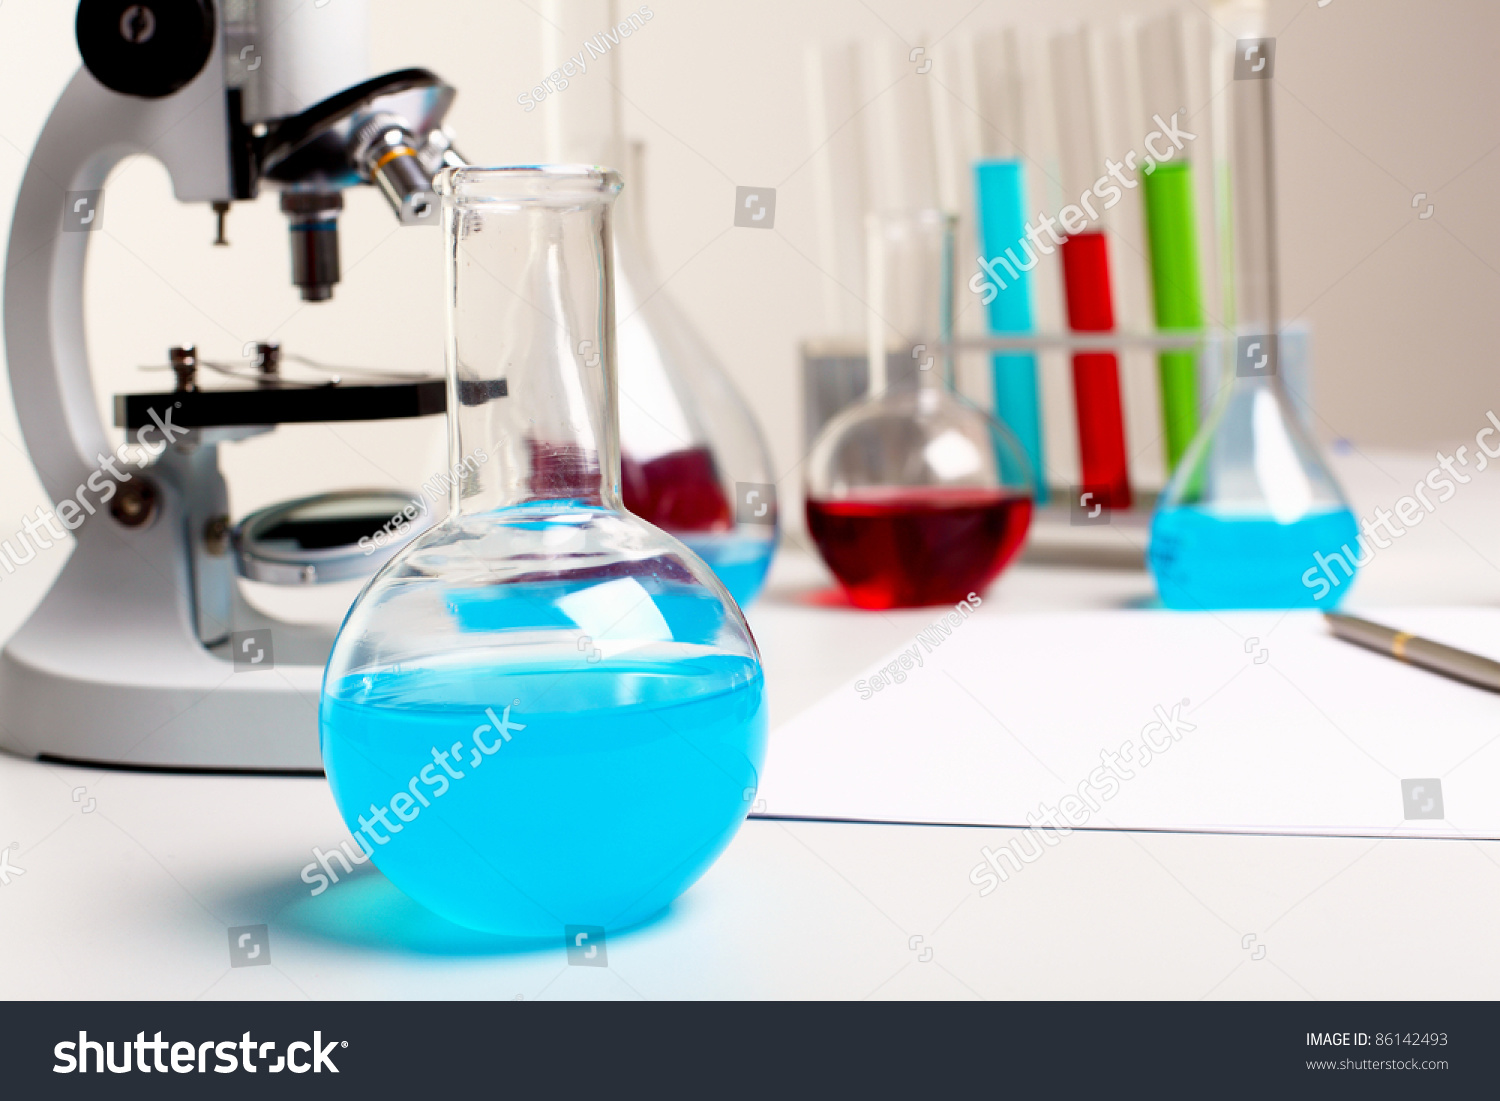 Worksheets Biology Laboratory Equipment image chemistry biology laboratory equipment stock photo 86142493 of or equipment